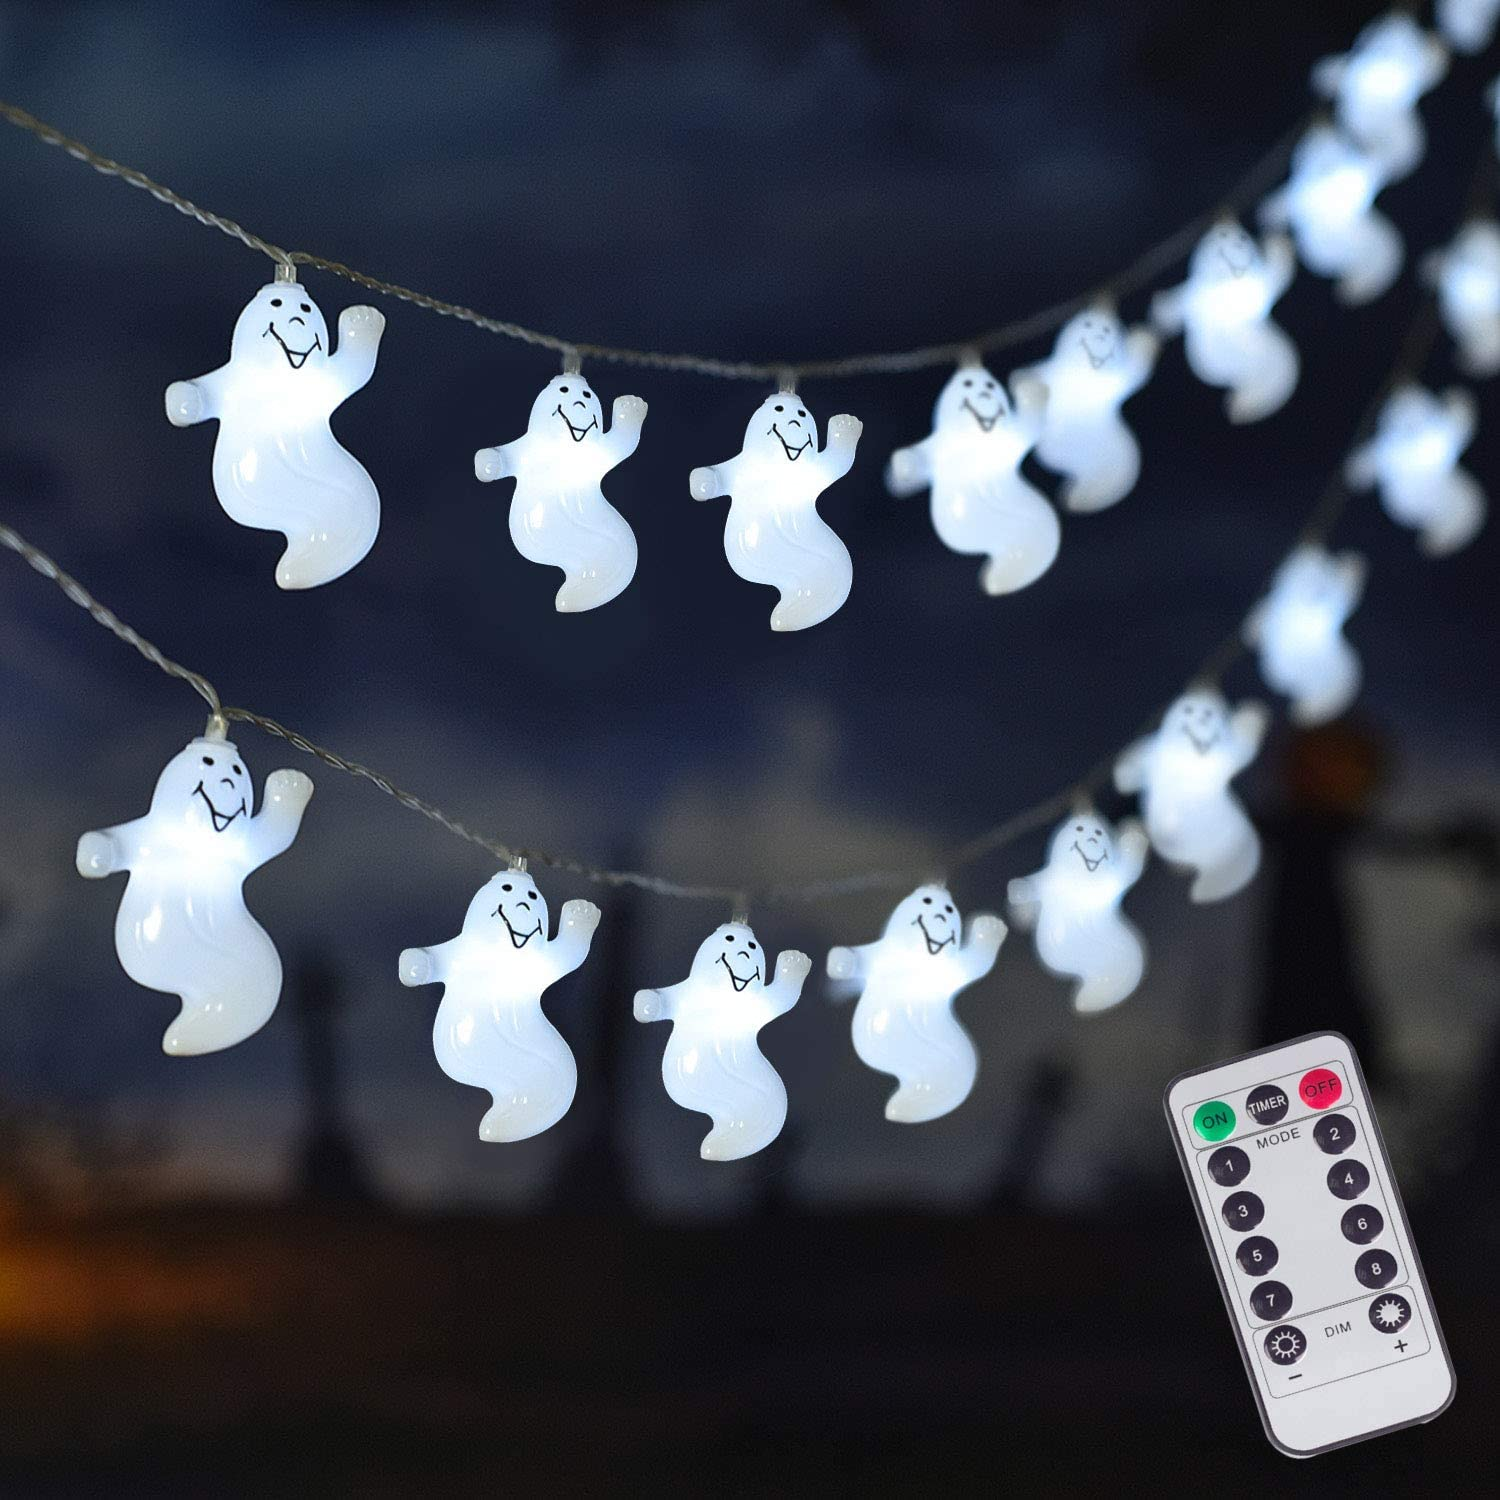 ILLUMINEW 30 LED Halloween Ghost String Lights, Battery Operated Halloween Lights with Remote, 8 Modes Fairy Lights Indoor Outdoor Party, Patio, Christmas, Halloween Decoration (Medium): Home Improvement